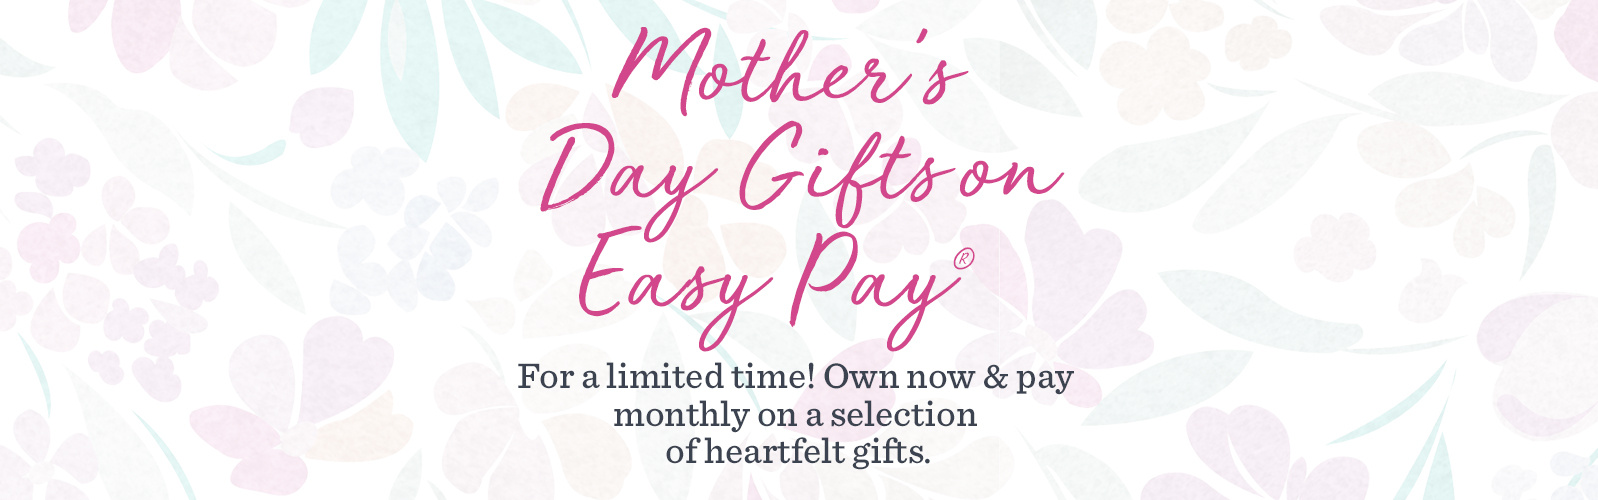 Mother's Day Gifts on Easy Pay®  For a limited time! Own now & pay monthly on a selection of heartfelt gifts.